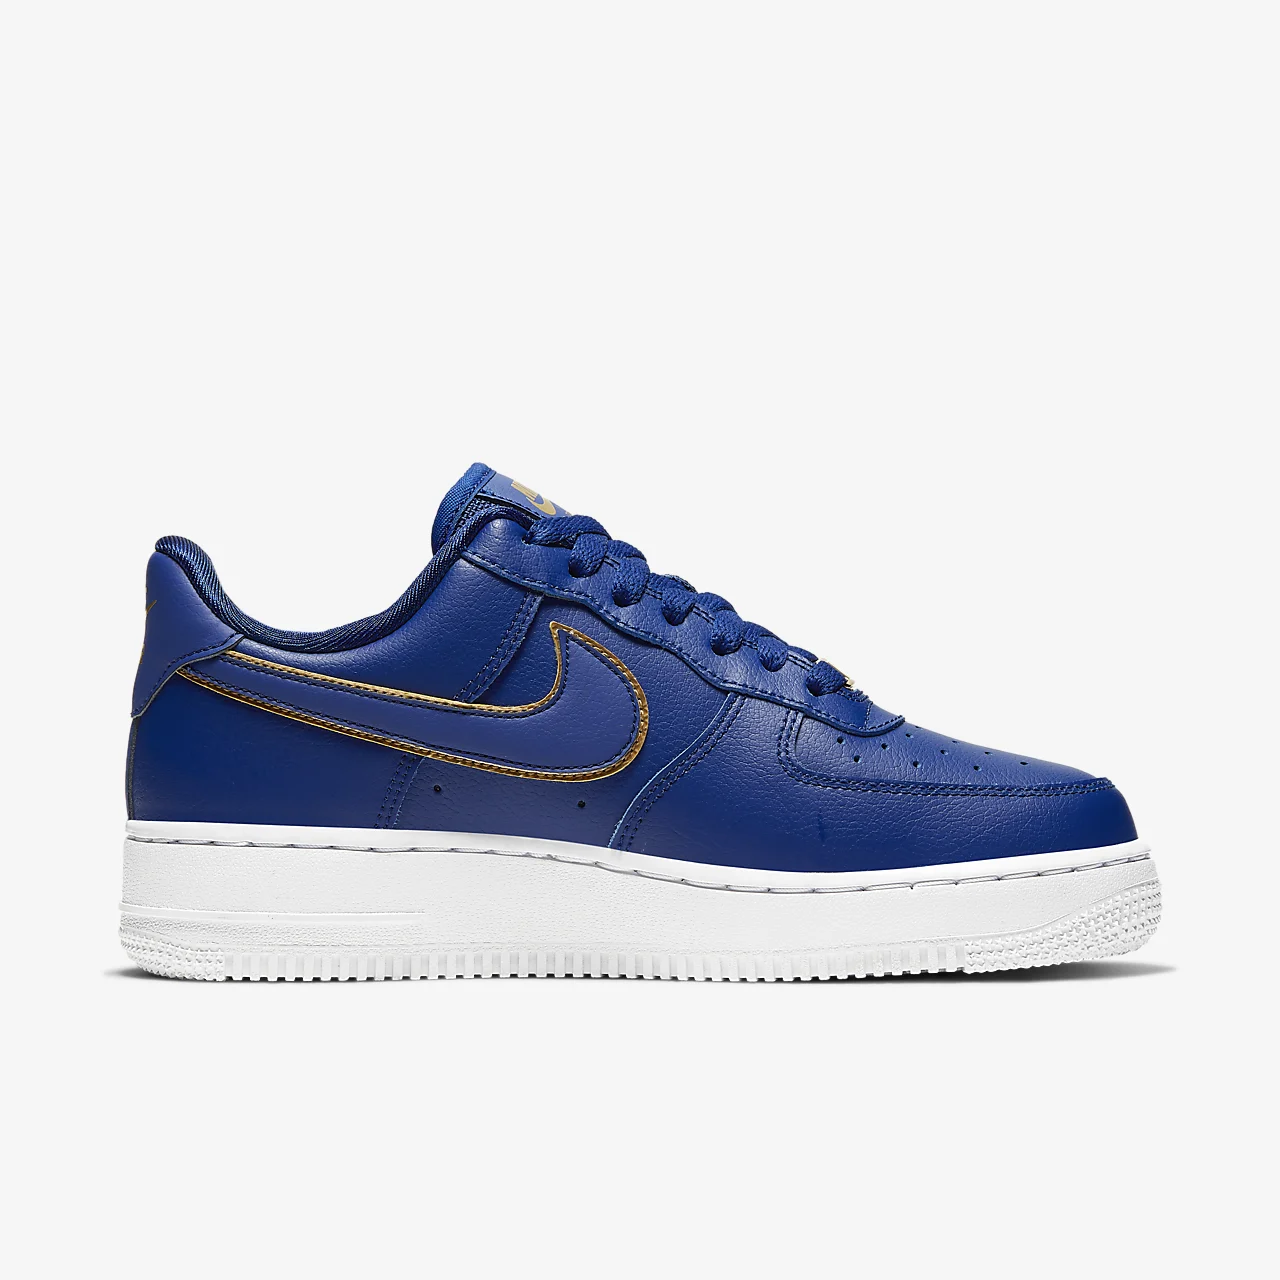 유럽직배송 나이키 NIKE Nike Air Force 1 '07 Essential Women's Shoe AO2132-401